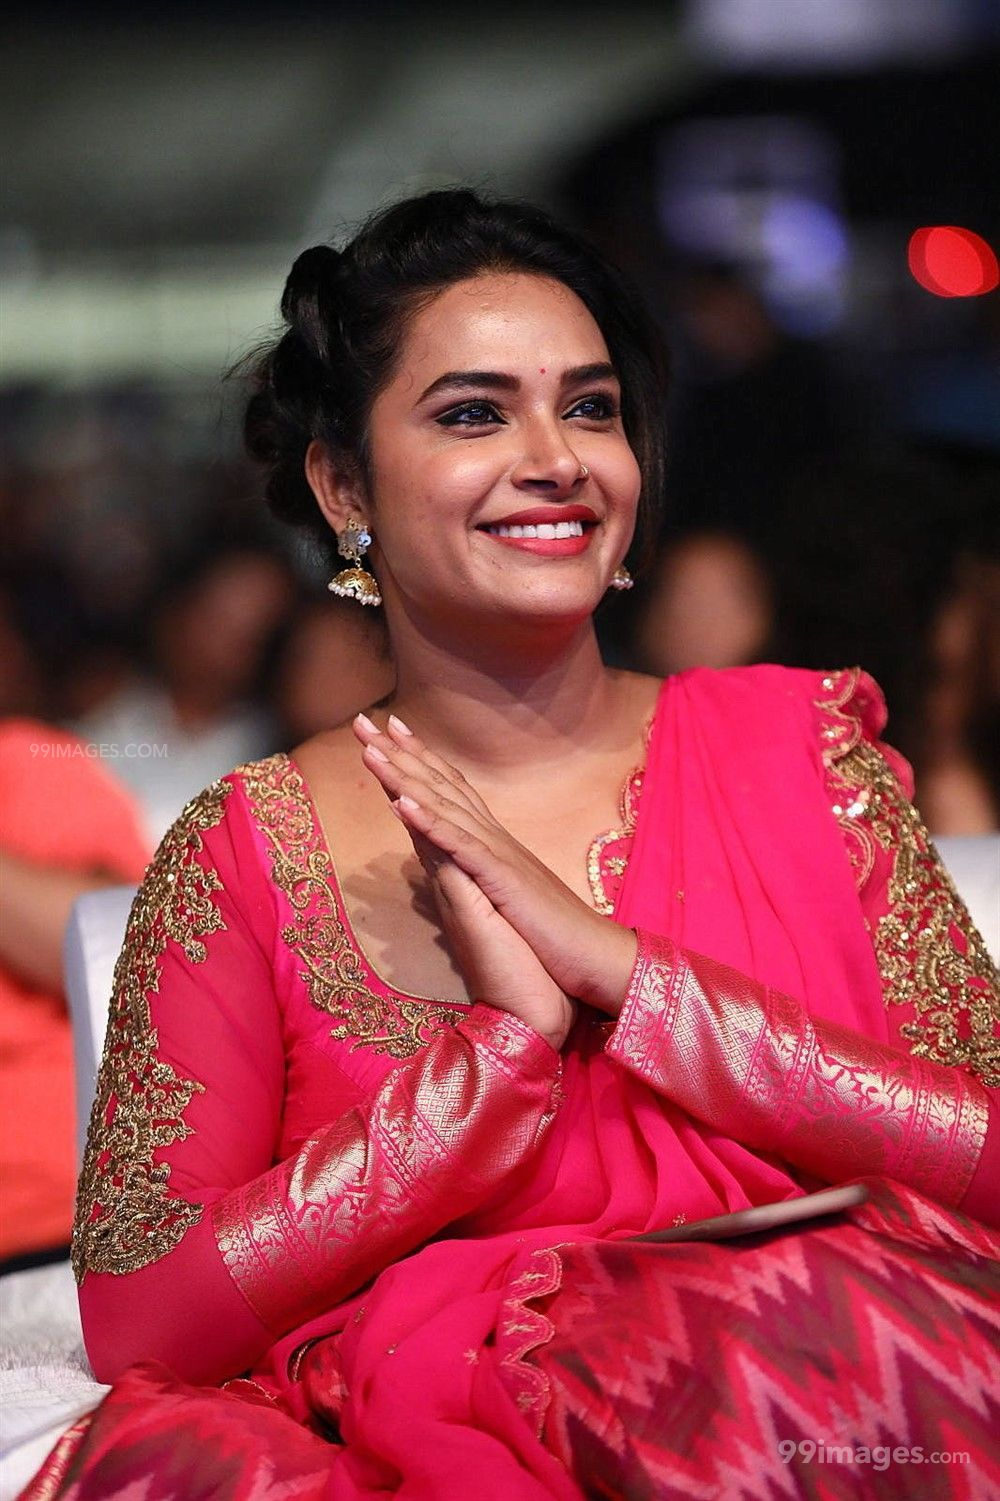 Actress Hari Teja Hot Beautiful HD Photos in Pink Saree at Sarileru Neekevvaru Movie Pre Release Event (219893) - Hari Teja, Sarileru Neekevvaru